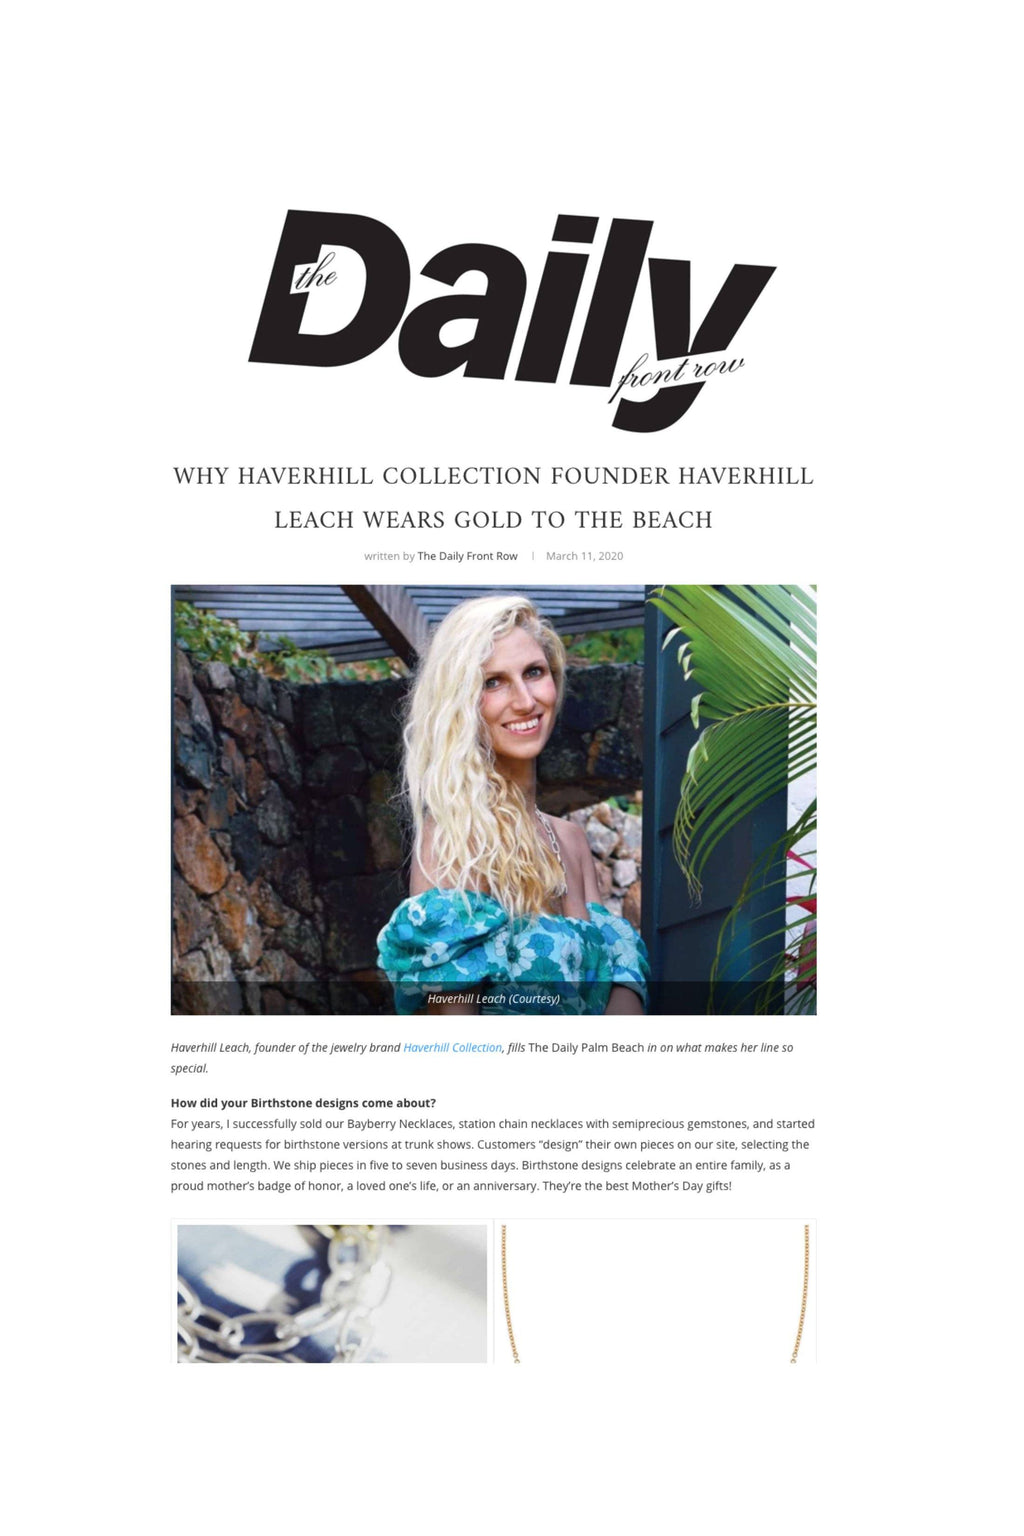 Daily Front Row: WHY HAVERHILL COLLECTION FOUNDER HAVERHILL LEACH WEARS GOLD TO THE BEACH